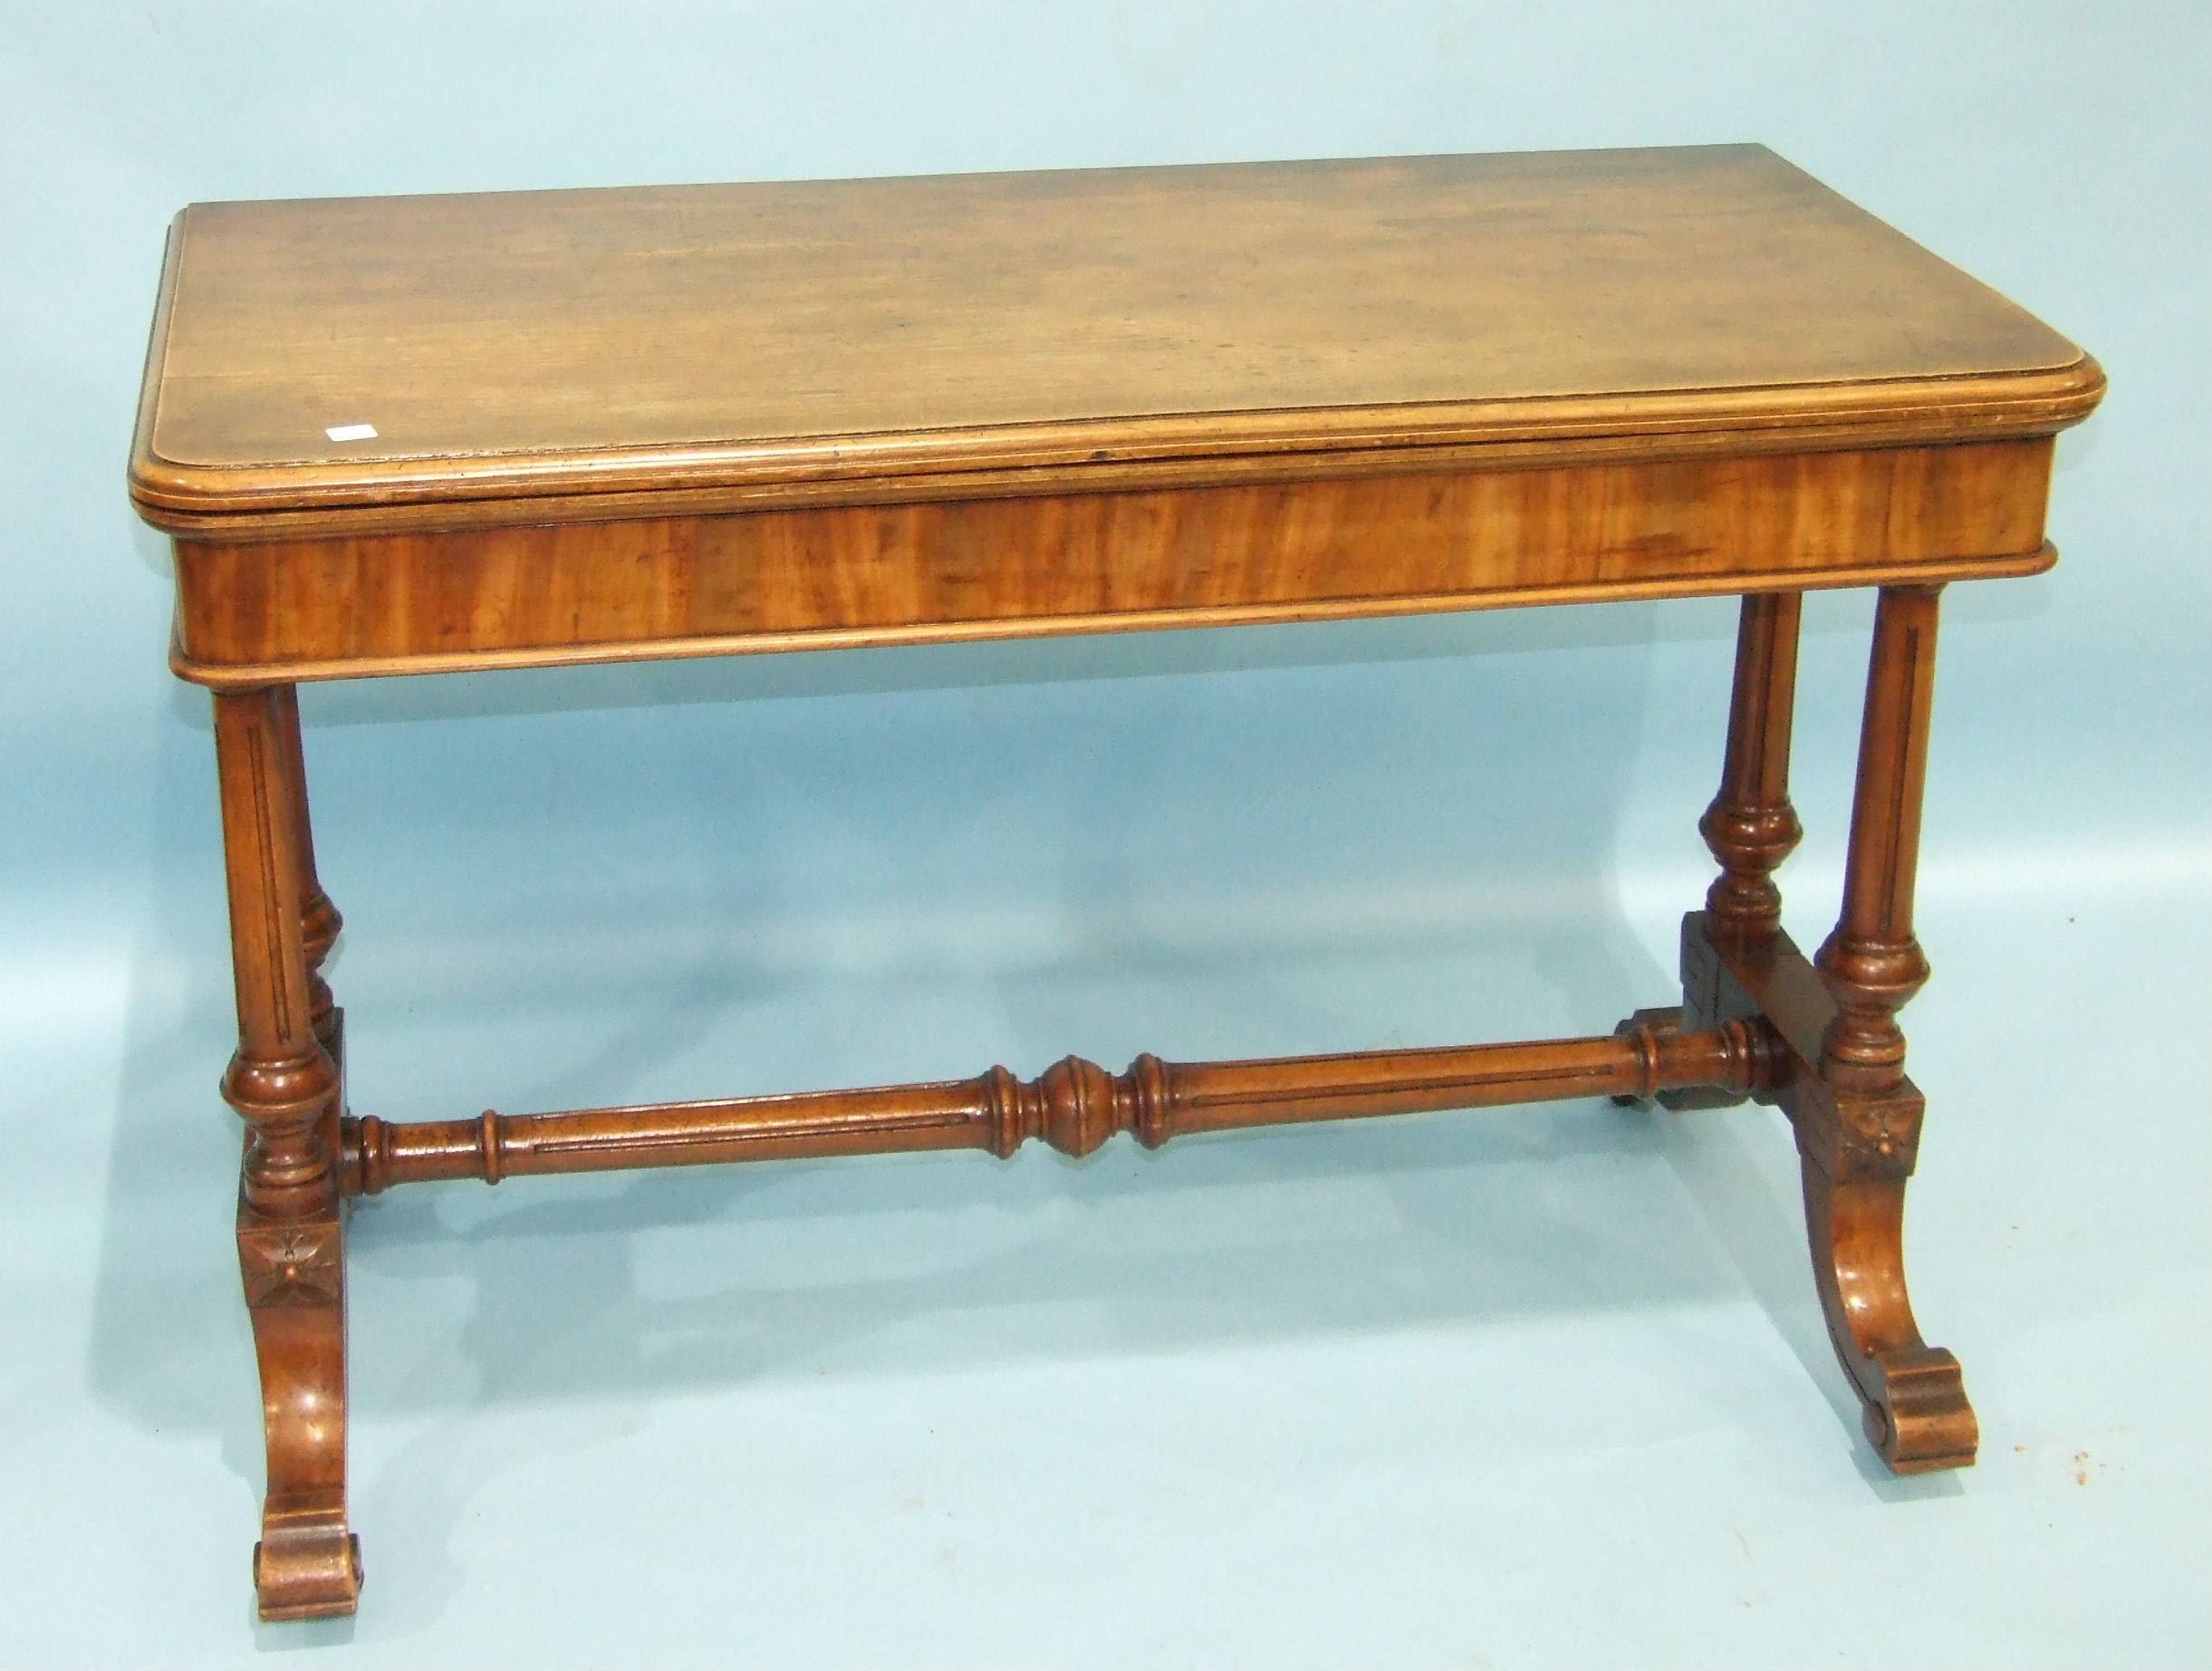 Lot 92 - A late-19th century large mahogany card table, the fold-over top with moulded edge swivelling to